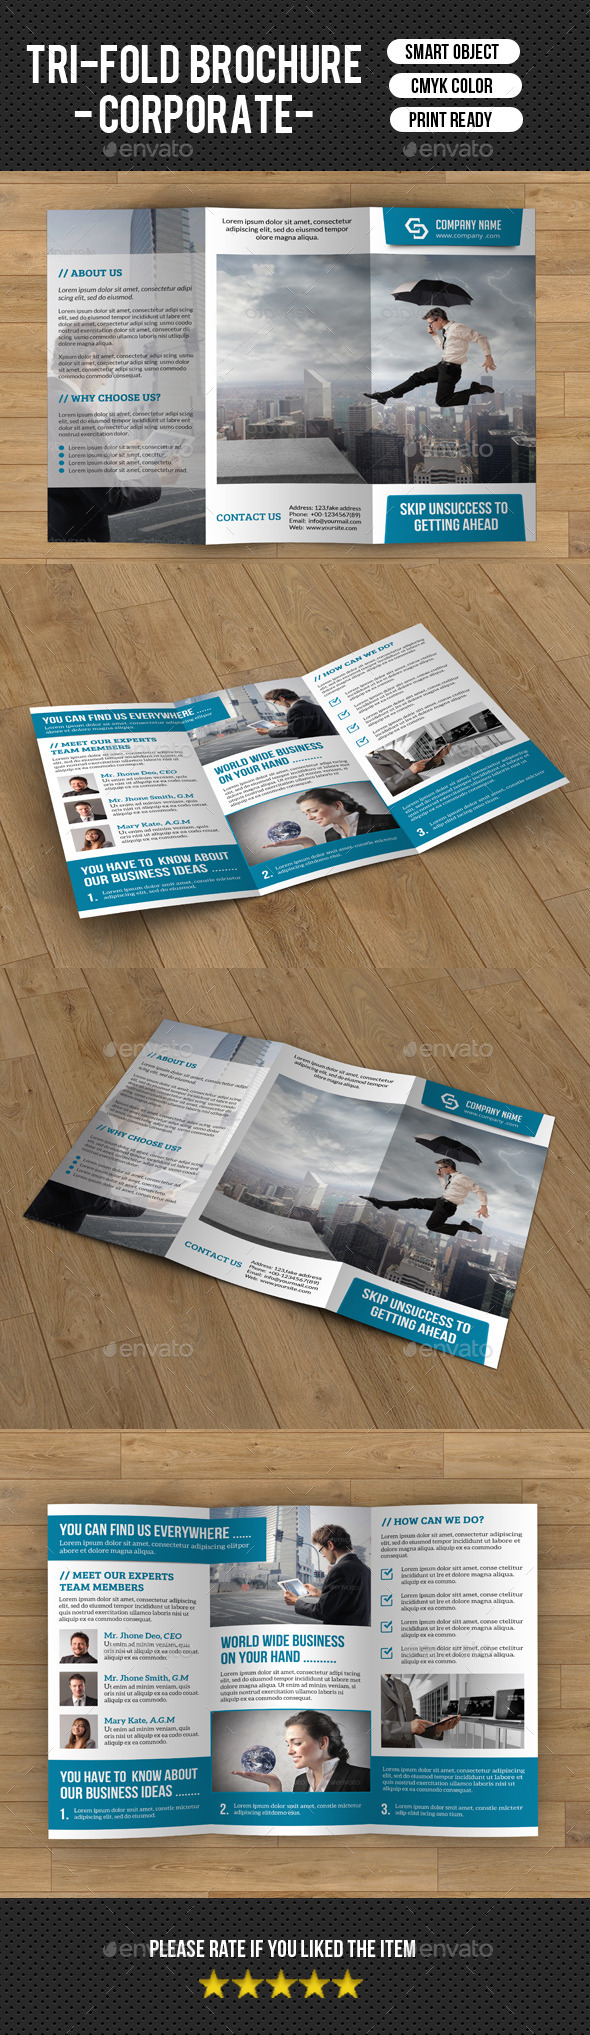 GraphicRiver Trifold Corporate Brochure Template-v189 9589551